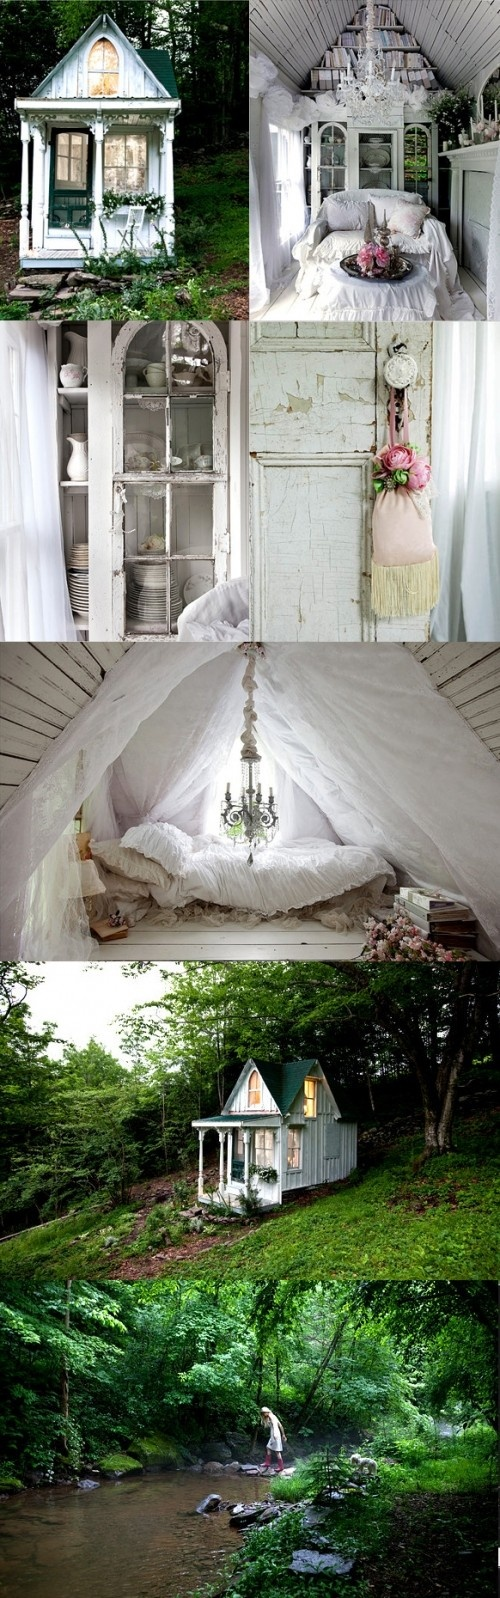 I would be terrified to live here, but it's so preeeetty